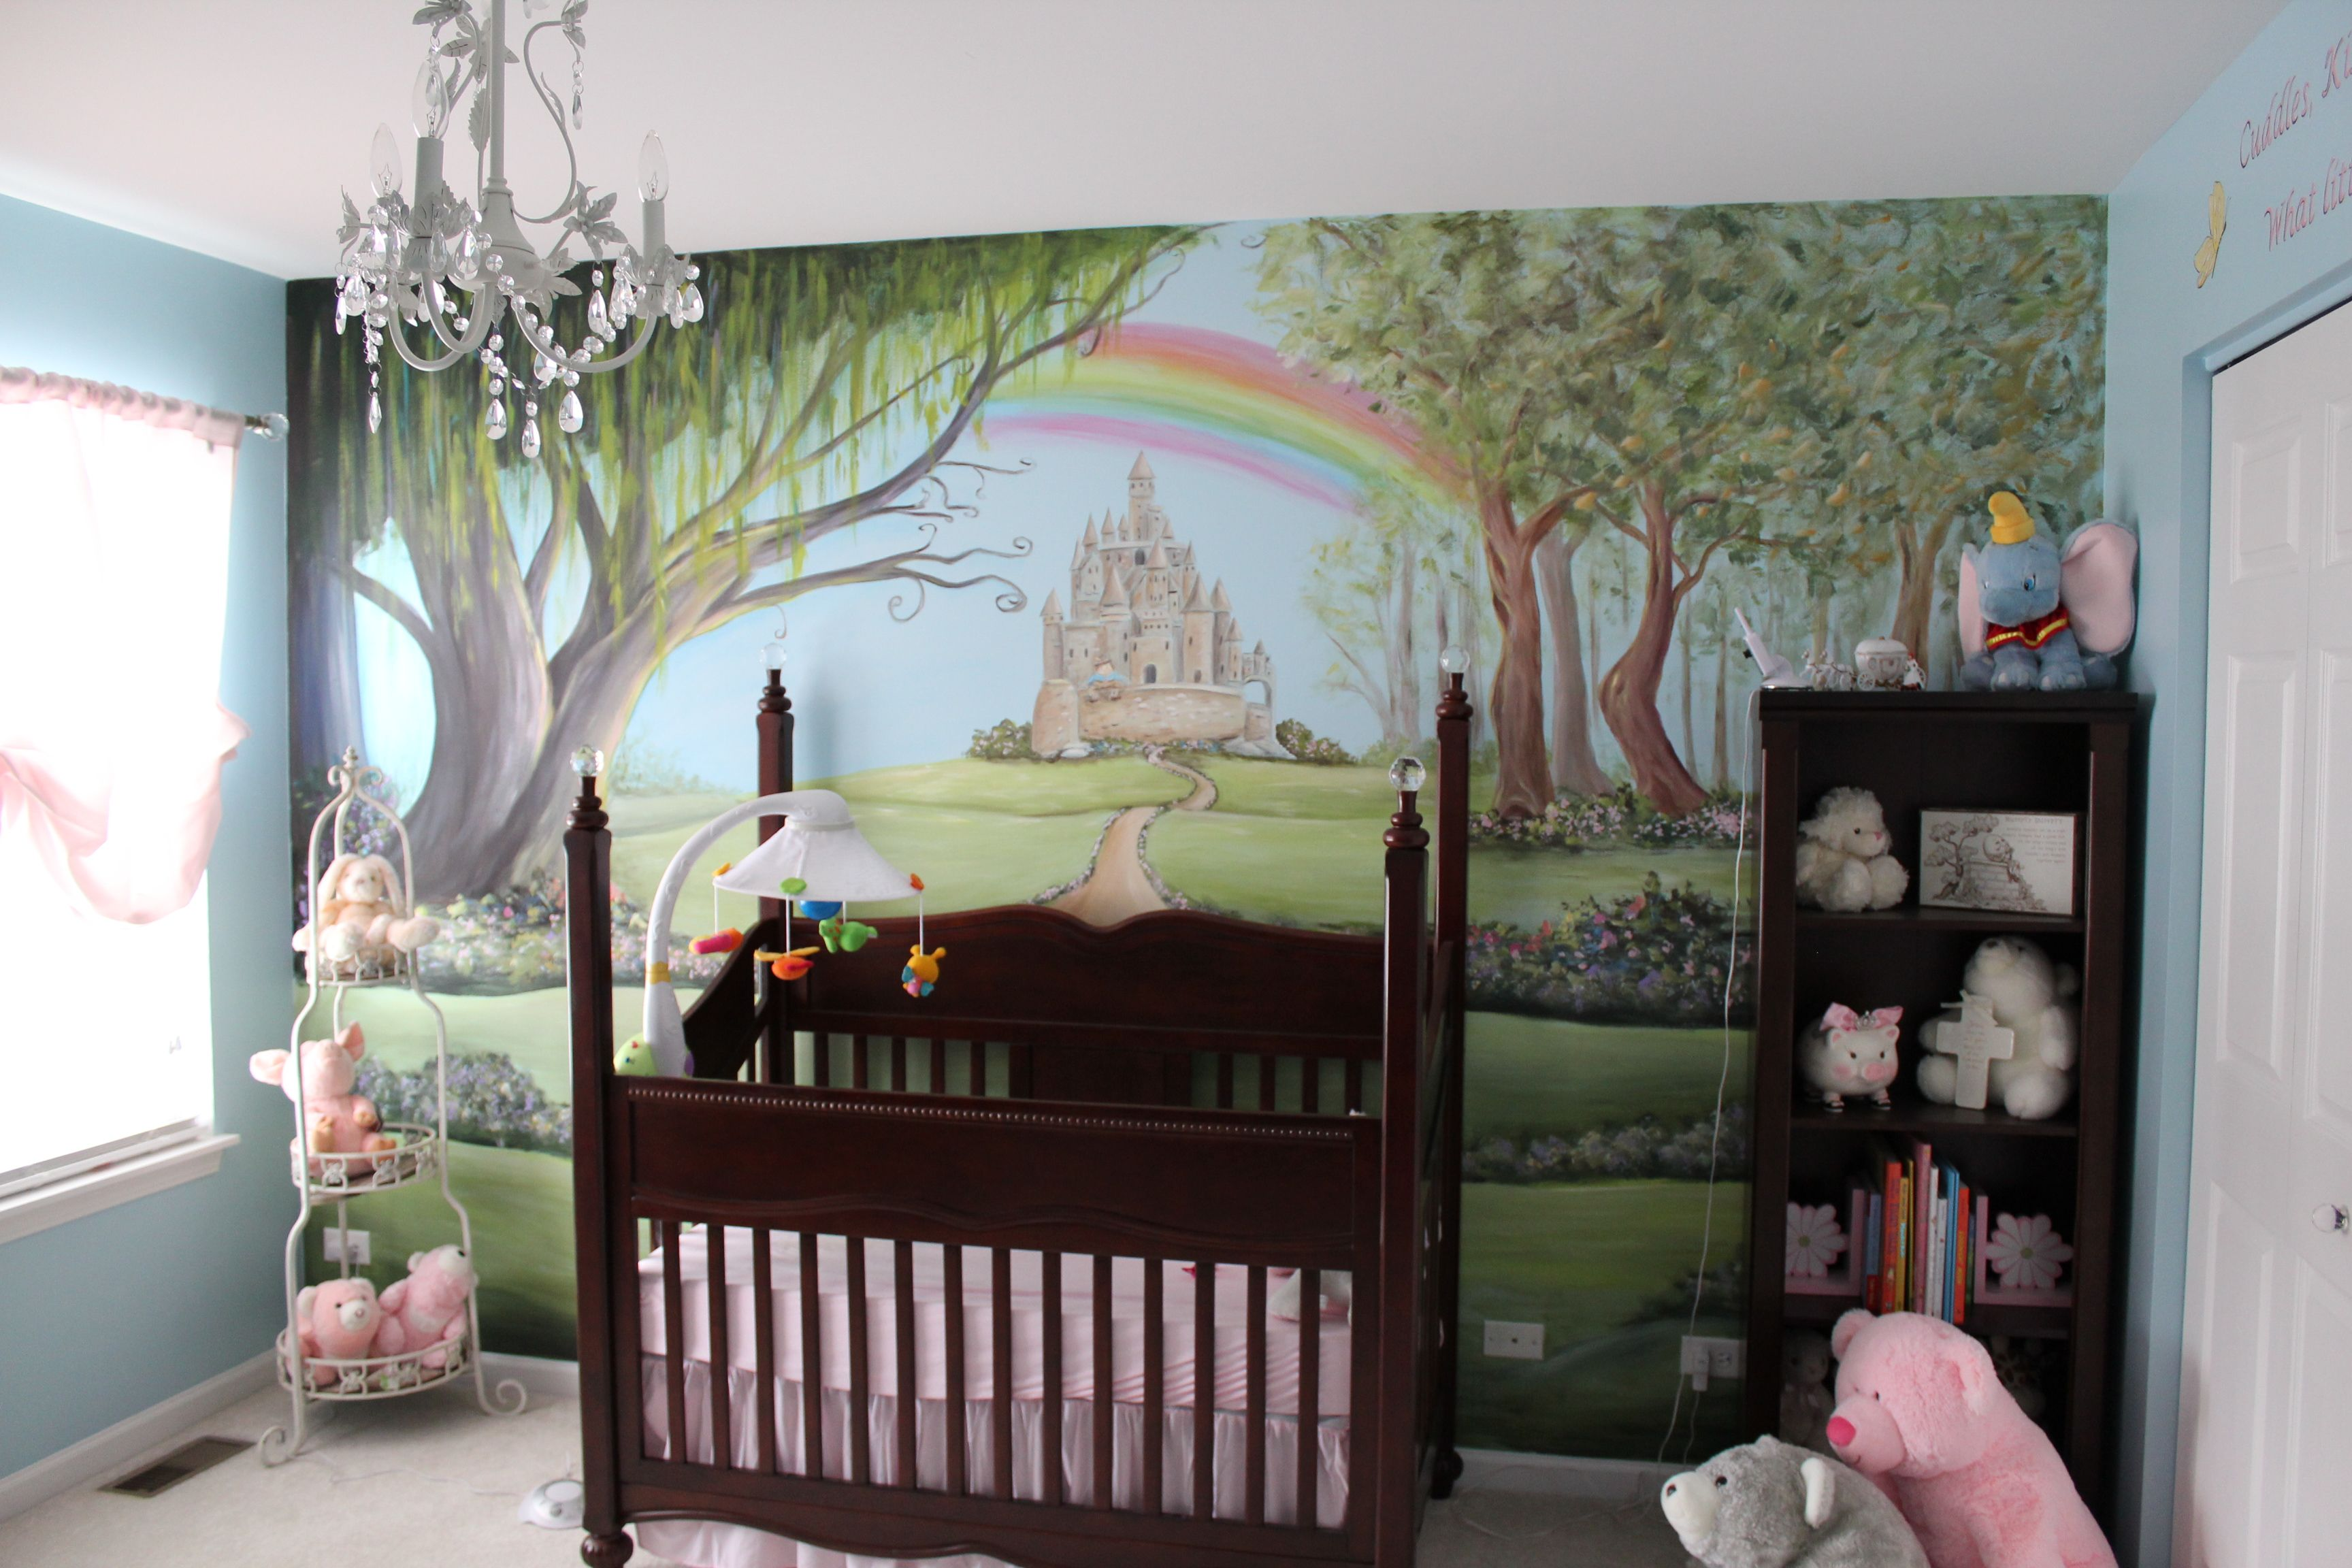 My favorite baby room mural... the enchanted forest